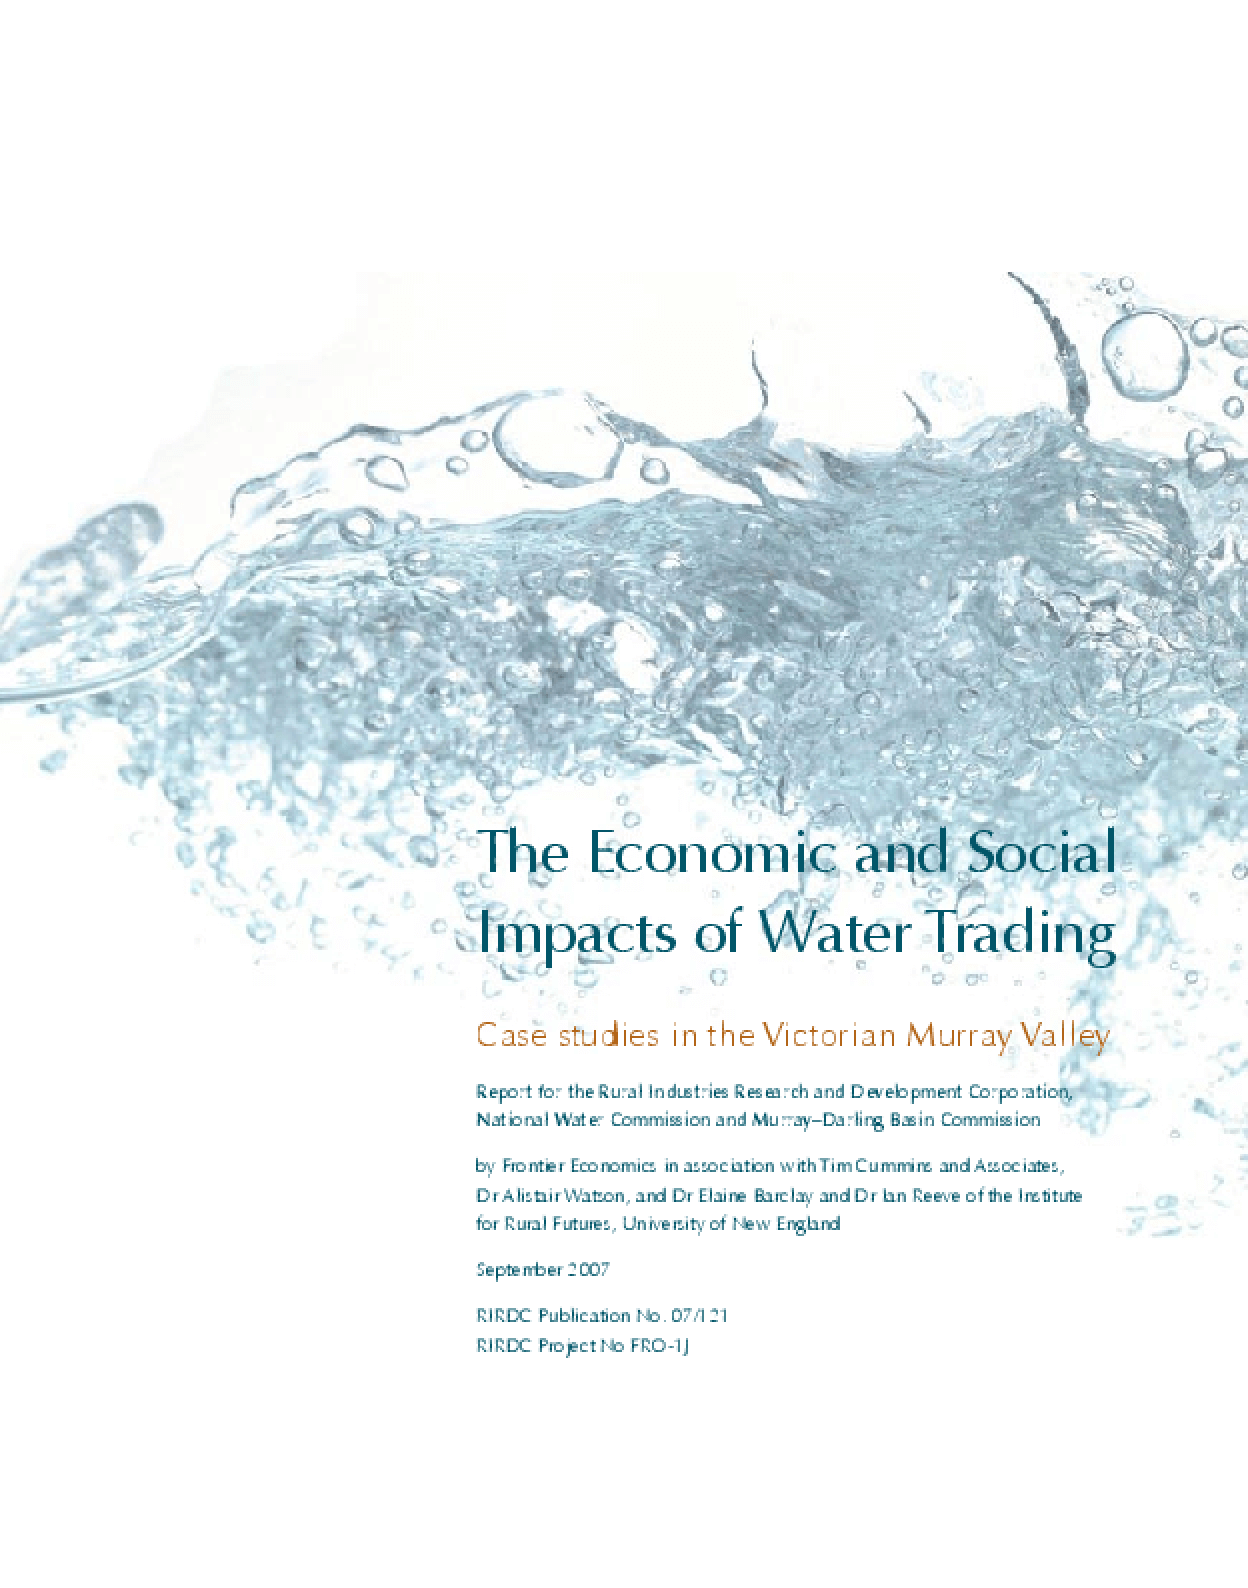 The Economic and Social Impacts of Water Trading: Case Studies in the Victorian Murray Valley